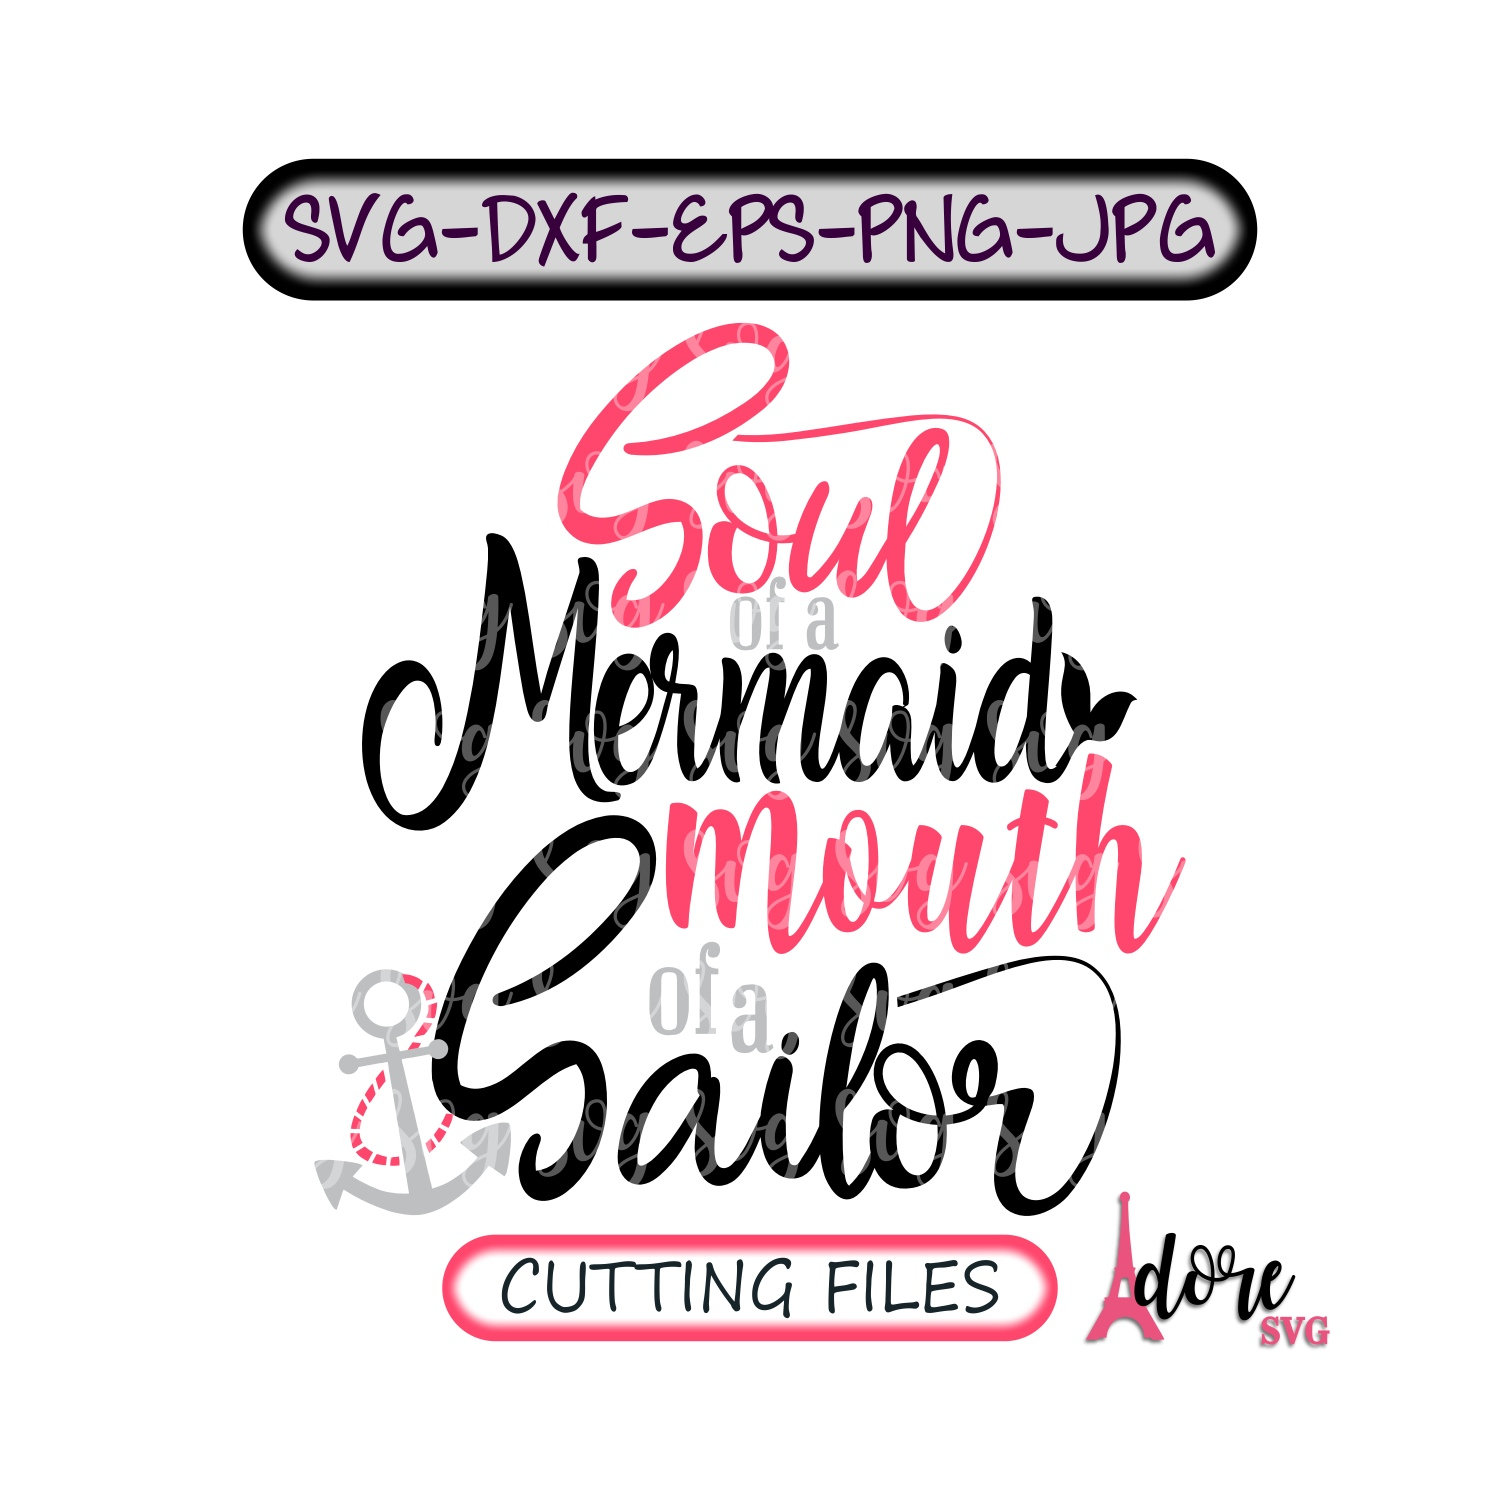 Soul-of-a-mermaid-svgmouth-of-a-sailor-svgsailor-svgfunny-svgfunny-quote-svgsvg-designsmermaid-svgsvg-cut-filescricut-cut-files-5e223c25